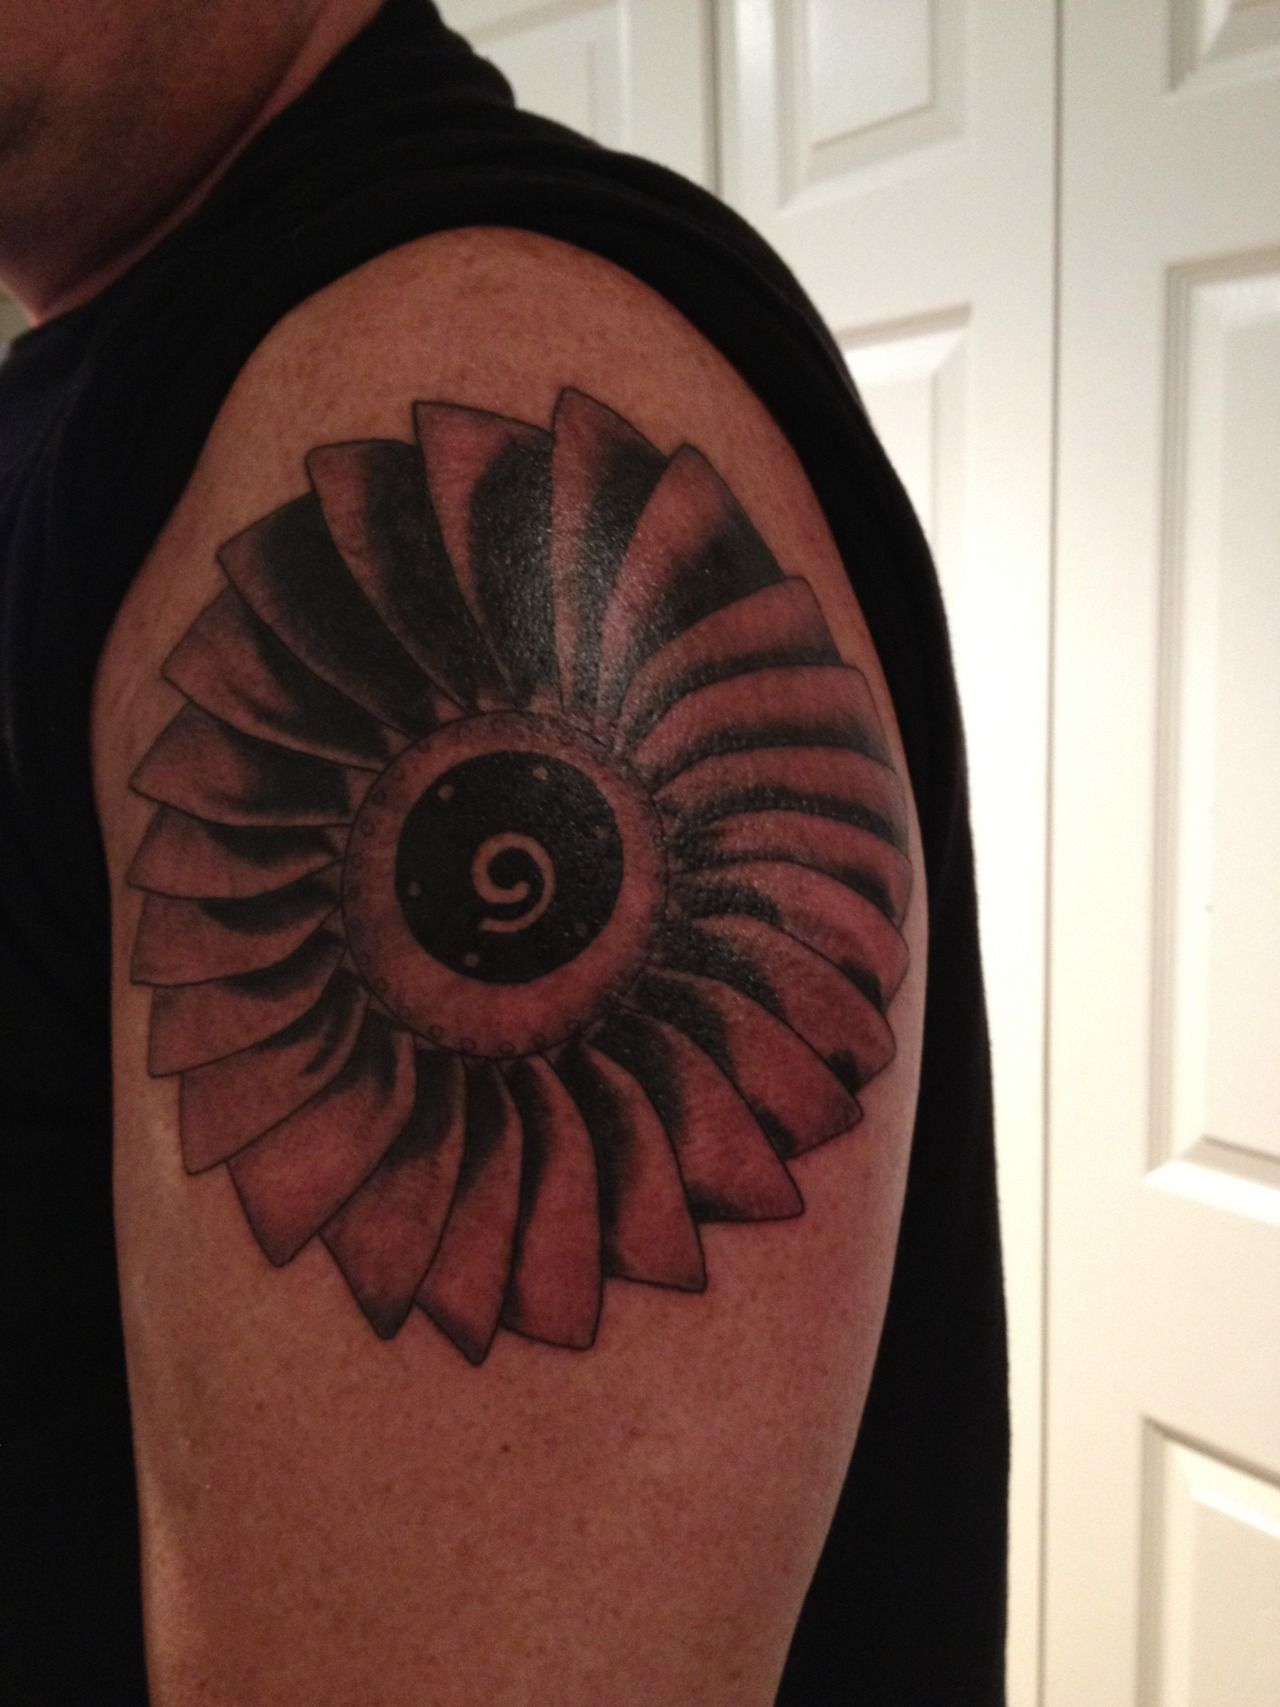 hmmm maybe but girly this is a tattoo of the fan blades of a 737 jet engine im an aircraft mechanic done by mike carter of ink inc in mckinney tx turbine engine mechanic